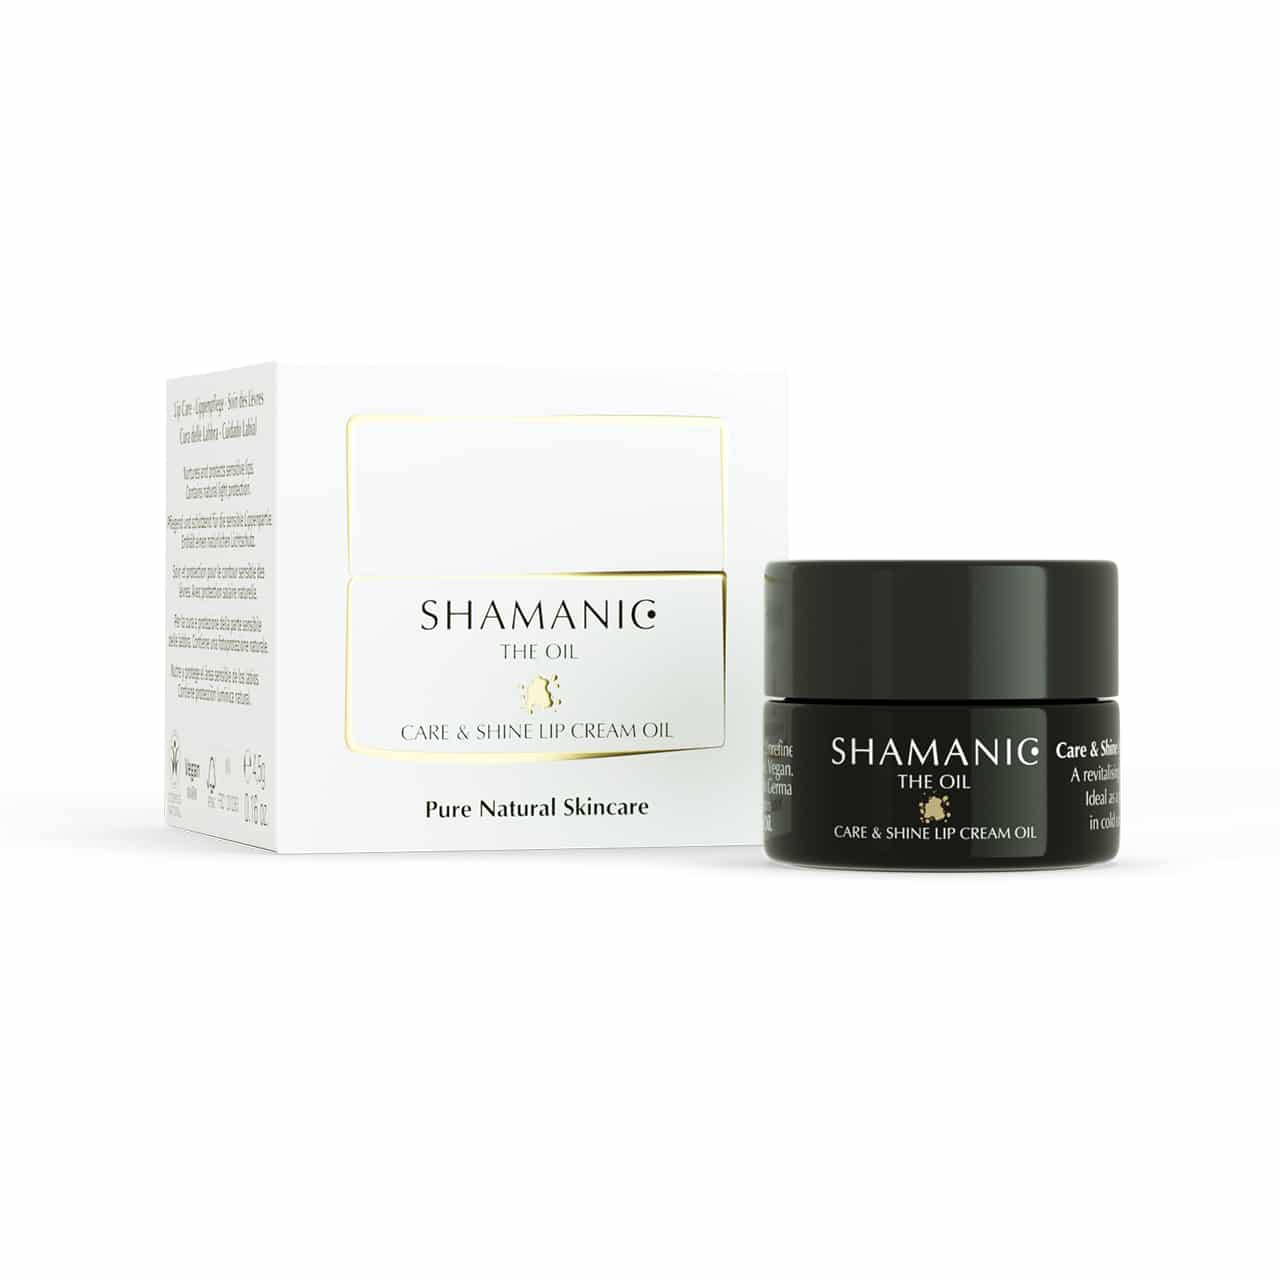 shamanic care & shine lip cream oil